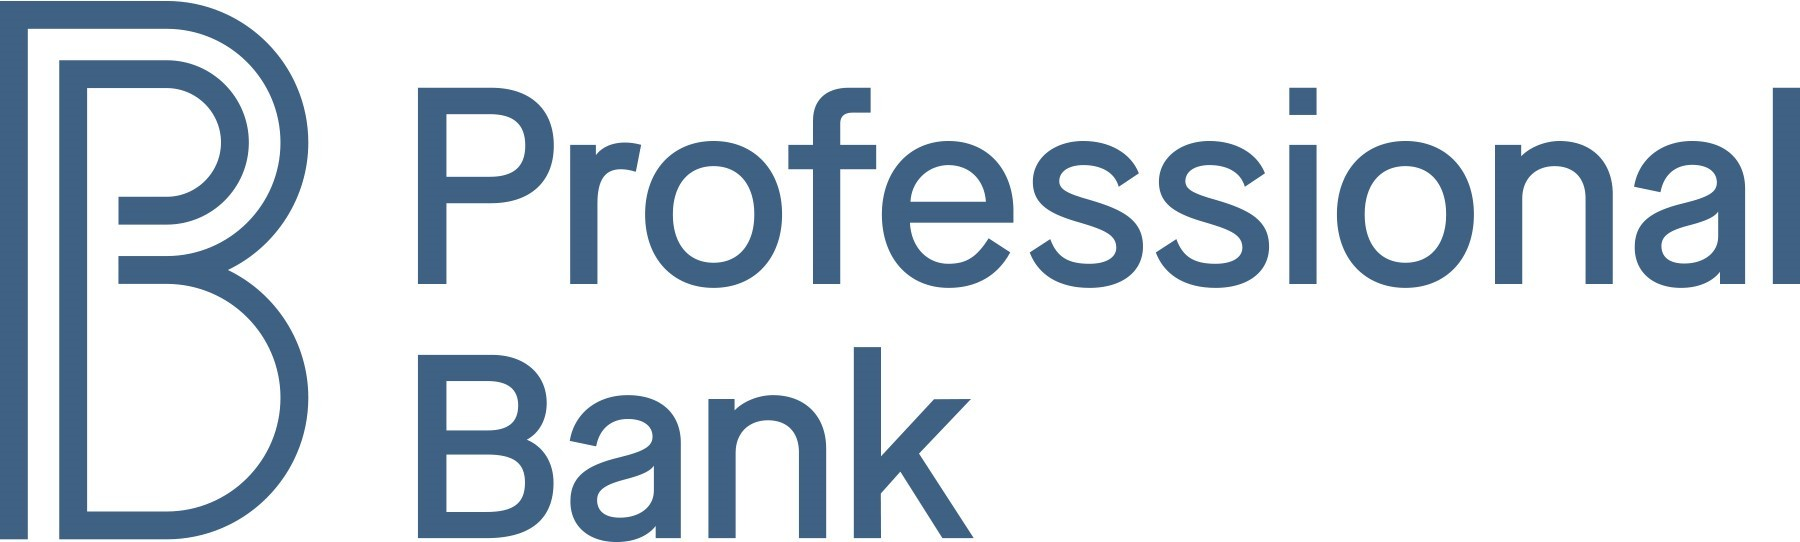 Professional Bank logo (PRNewsfoto/Professional Bank)